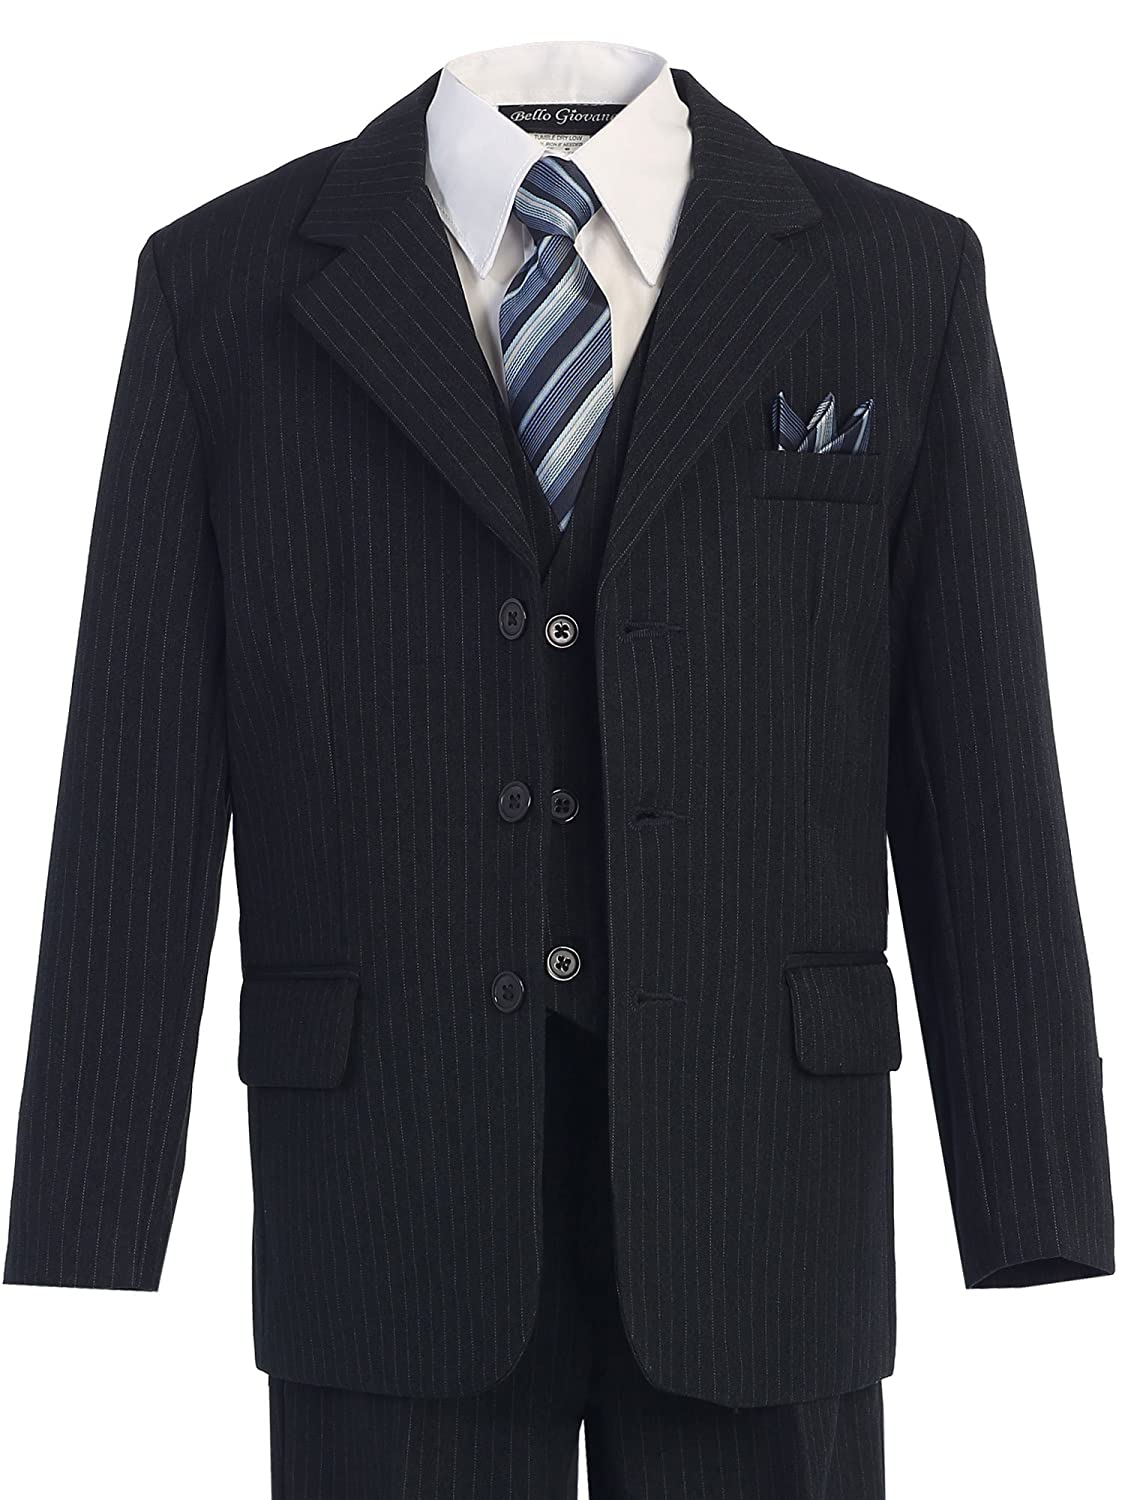 Bello Giovane Boys Pinstripe 5-piece Suit